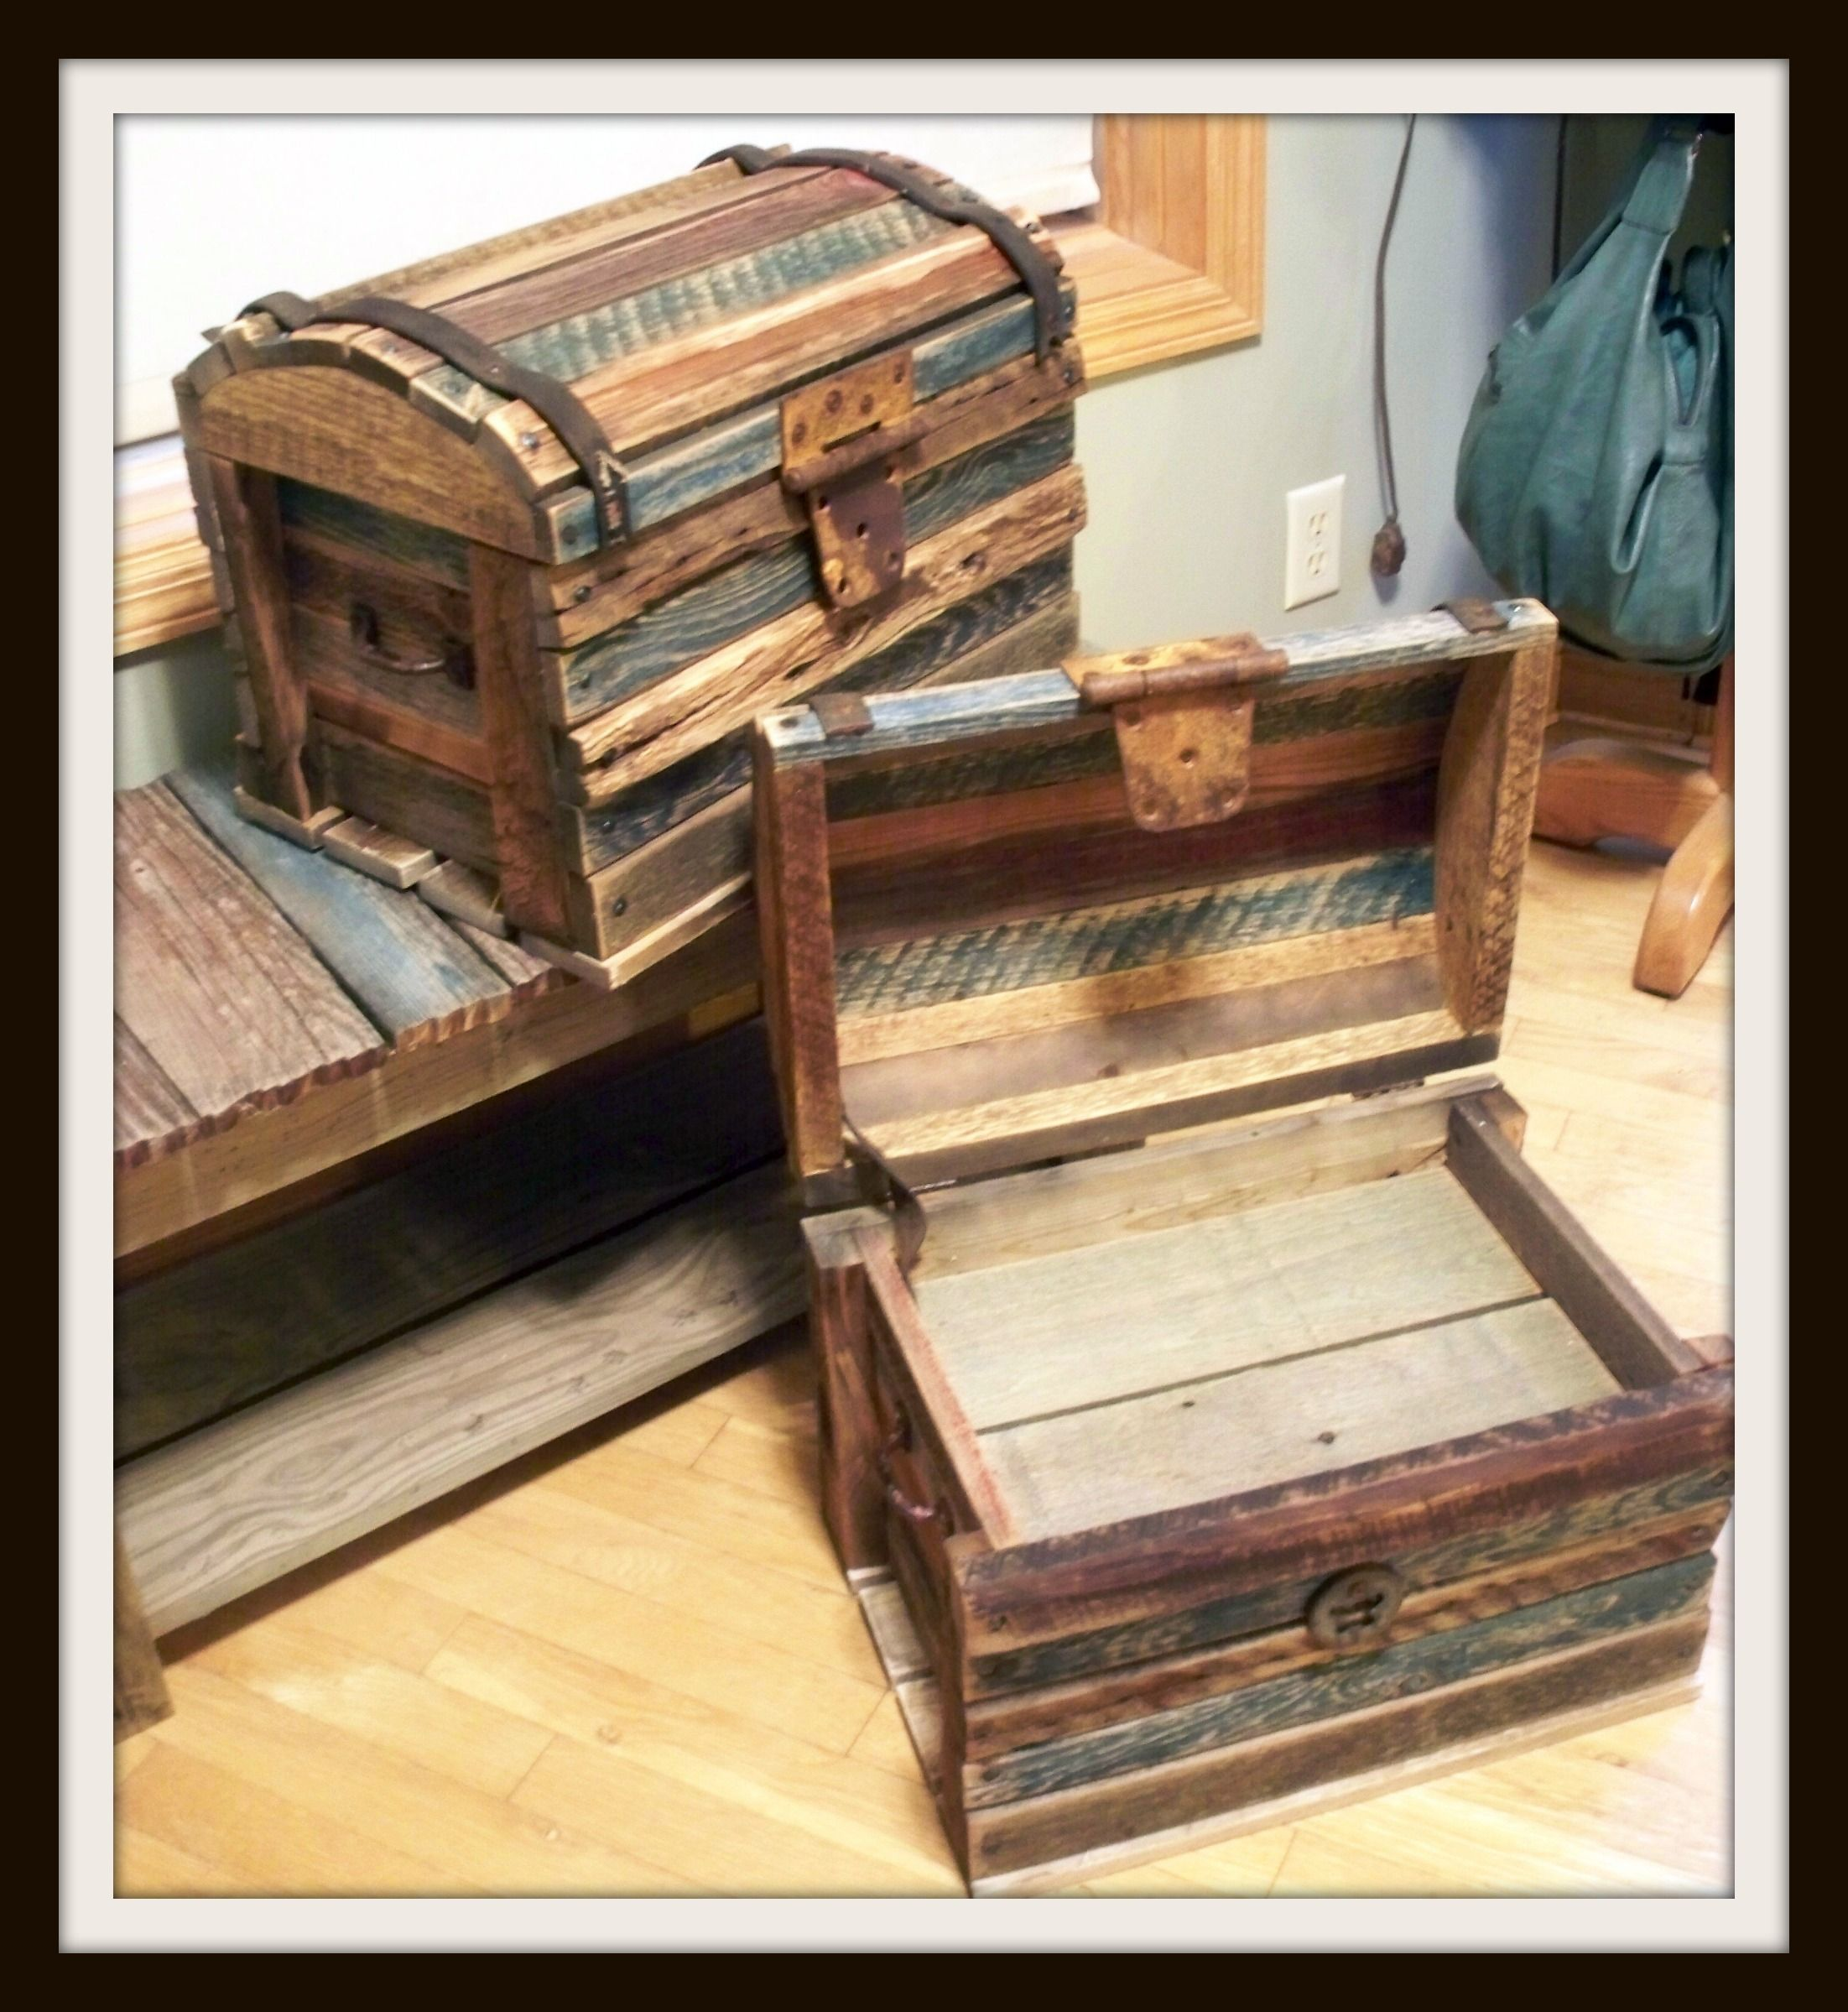 Barn Wood Treasure Chest Diy Projects To Try Pinterest